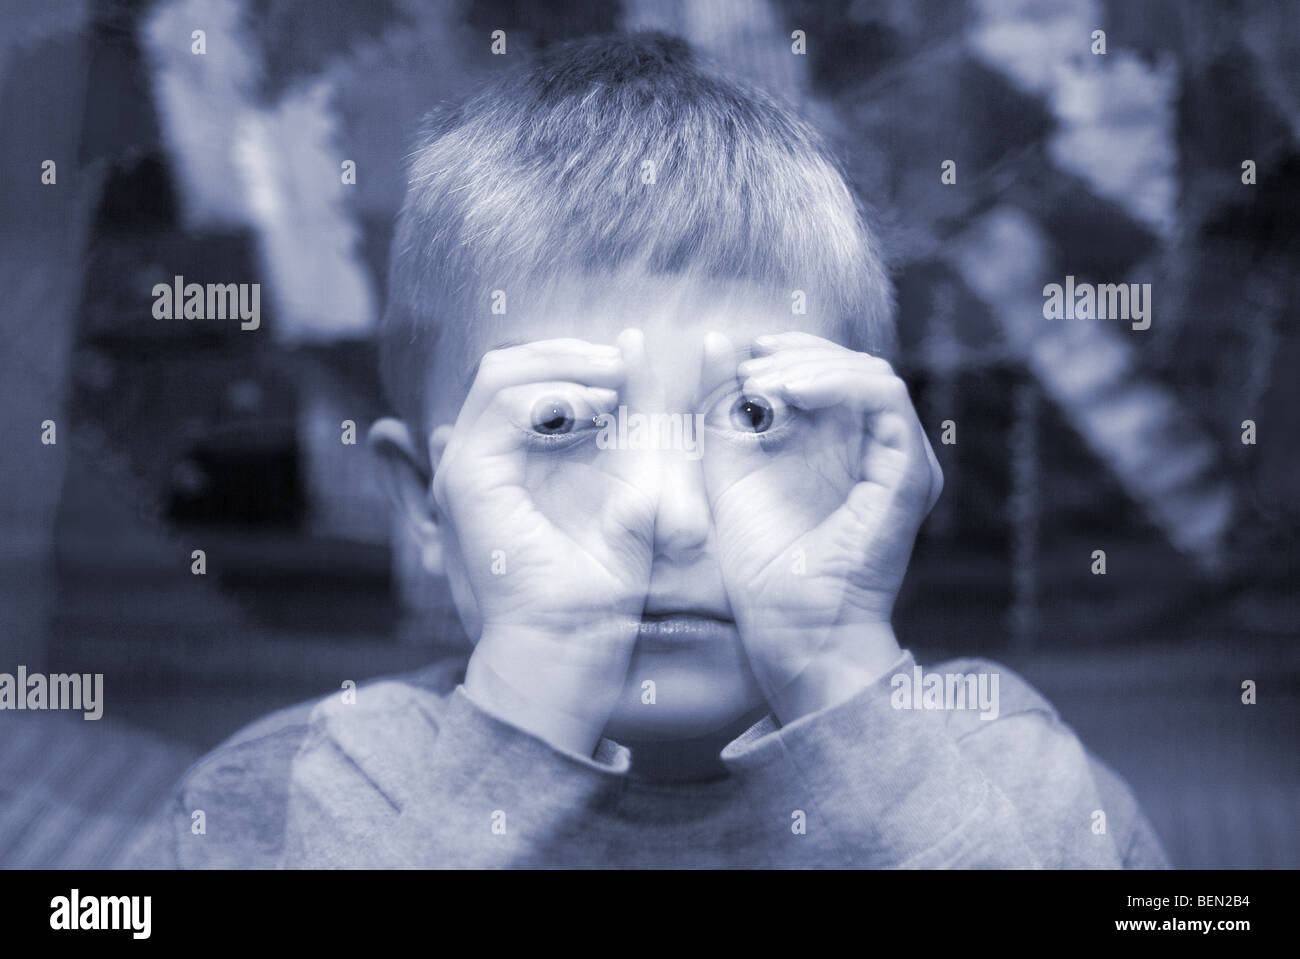 child making imaginary binoculars with hands in an ethereal double exposure - Stock Image